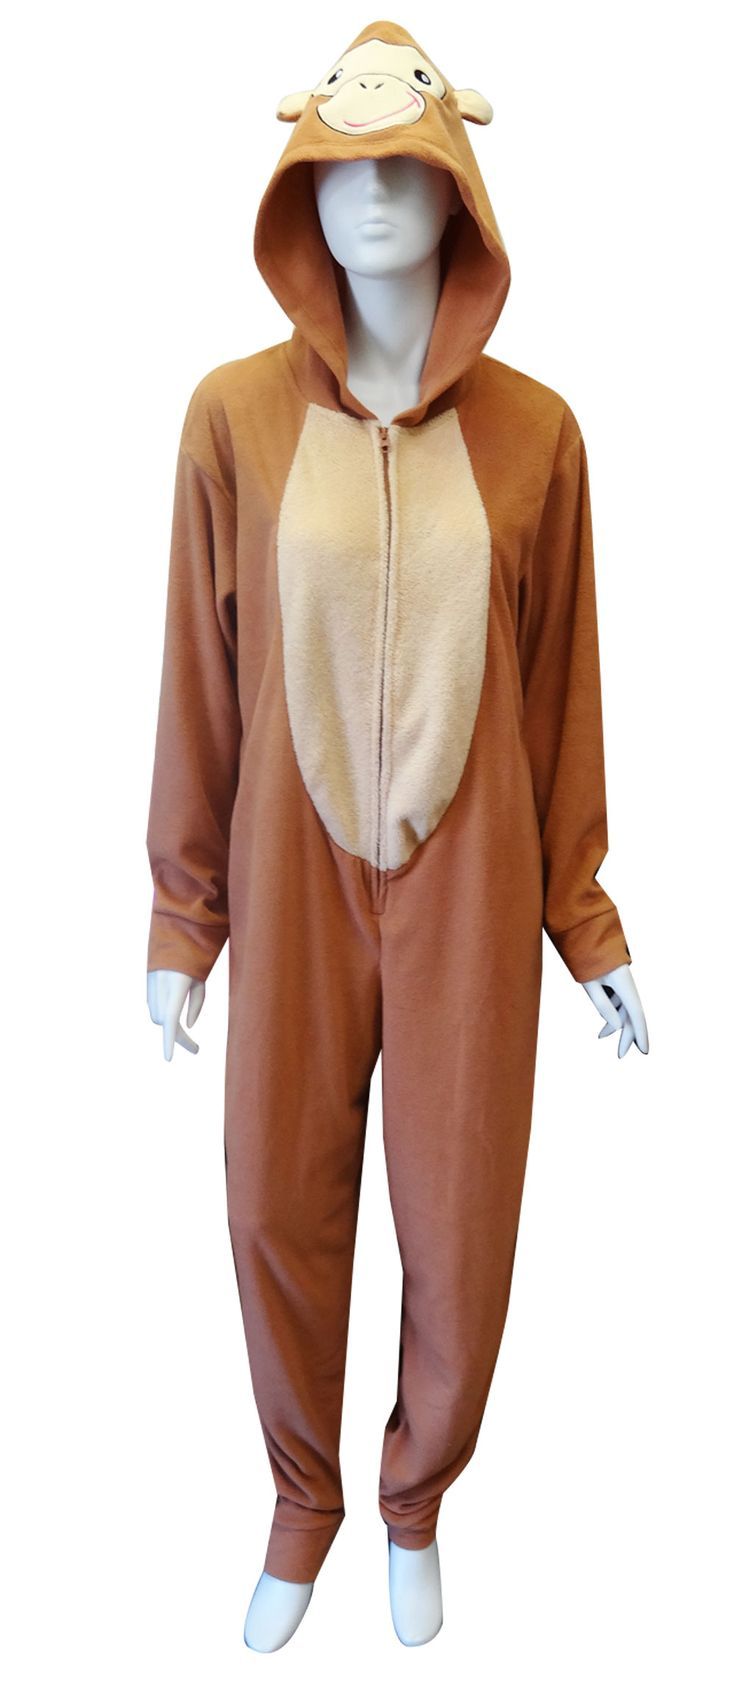 Buy low price, high quality mens monkey pajamas with worldwide shipping on free-cabinetfile-downloaded.ga